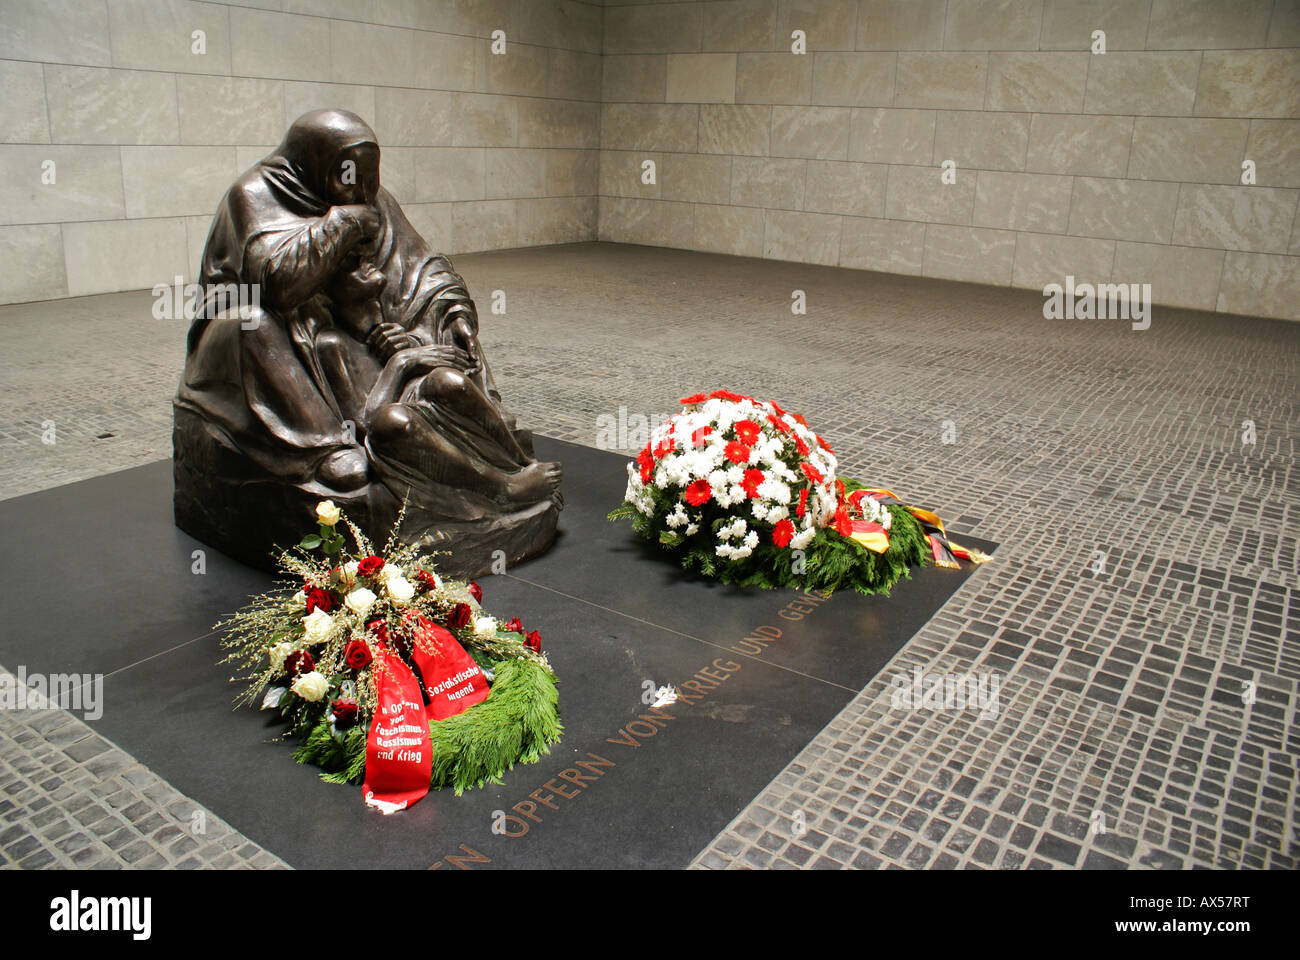 memorial to the soldiers killed in battle, in Berlin - Stock Image